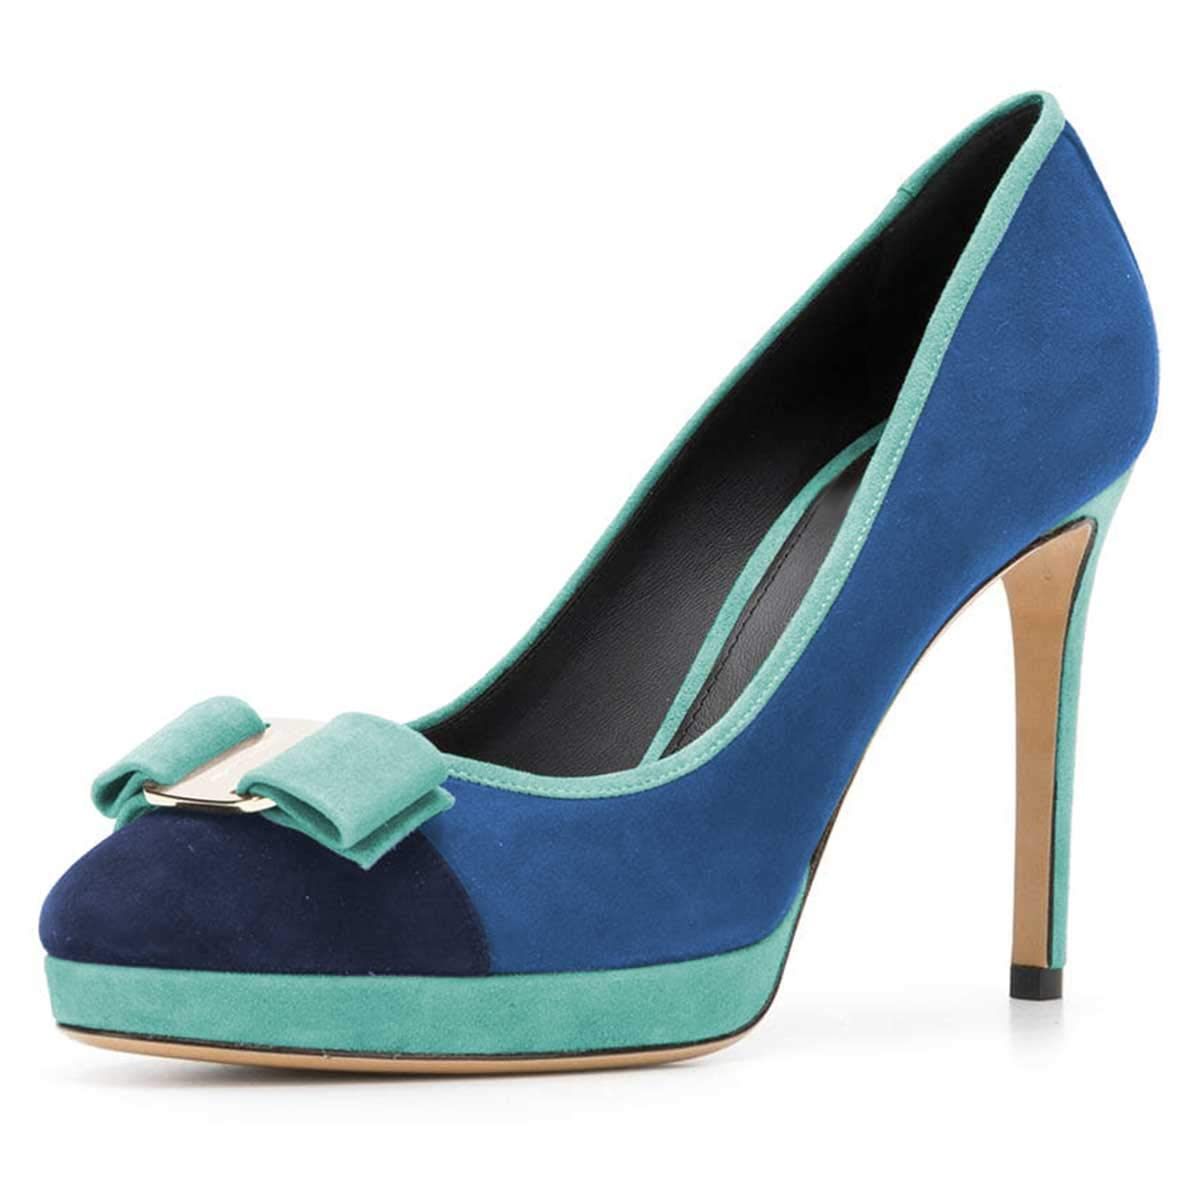 59d2bdc06a9 Amazon.com | FSJ Women Cute Bowknot Pumps Round Toe Platform ...